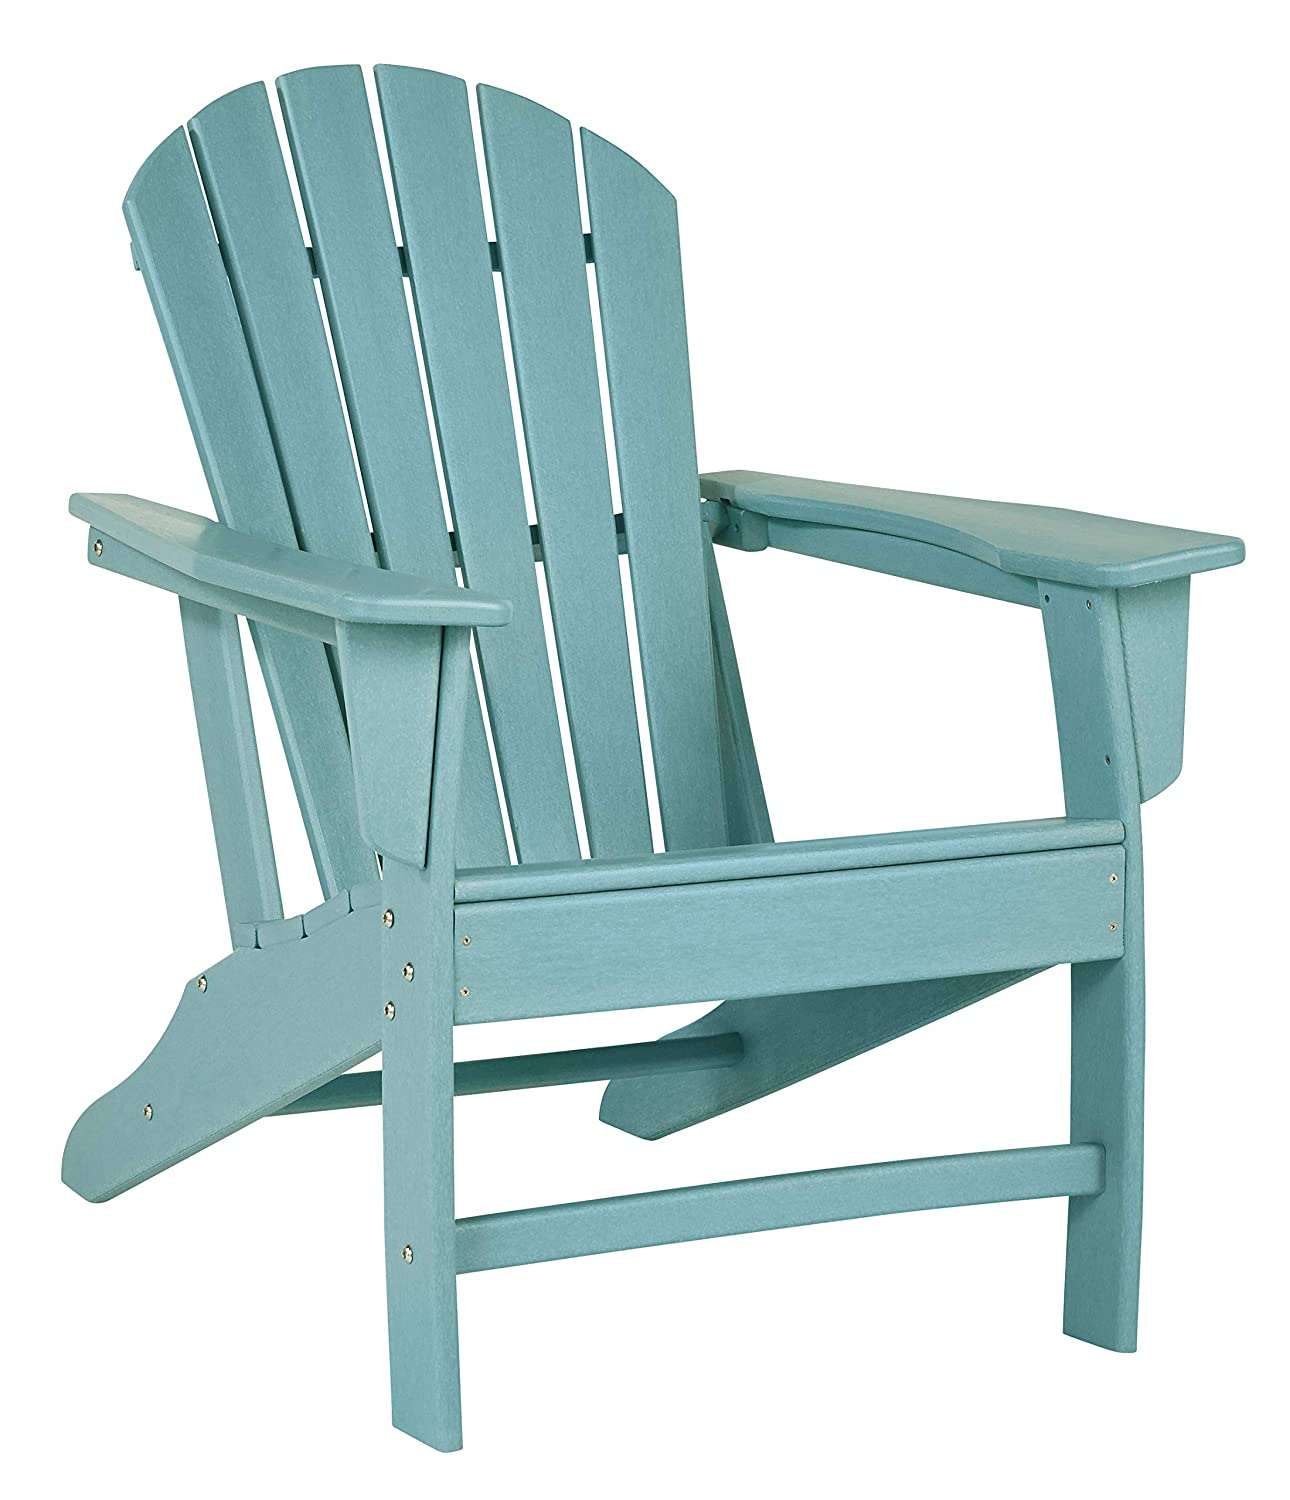 Signature Design by Ashley P012-898 Sundown Treasure Adirondack Chair, Turquoise